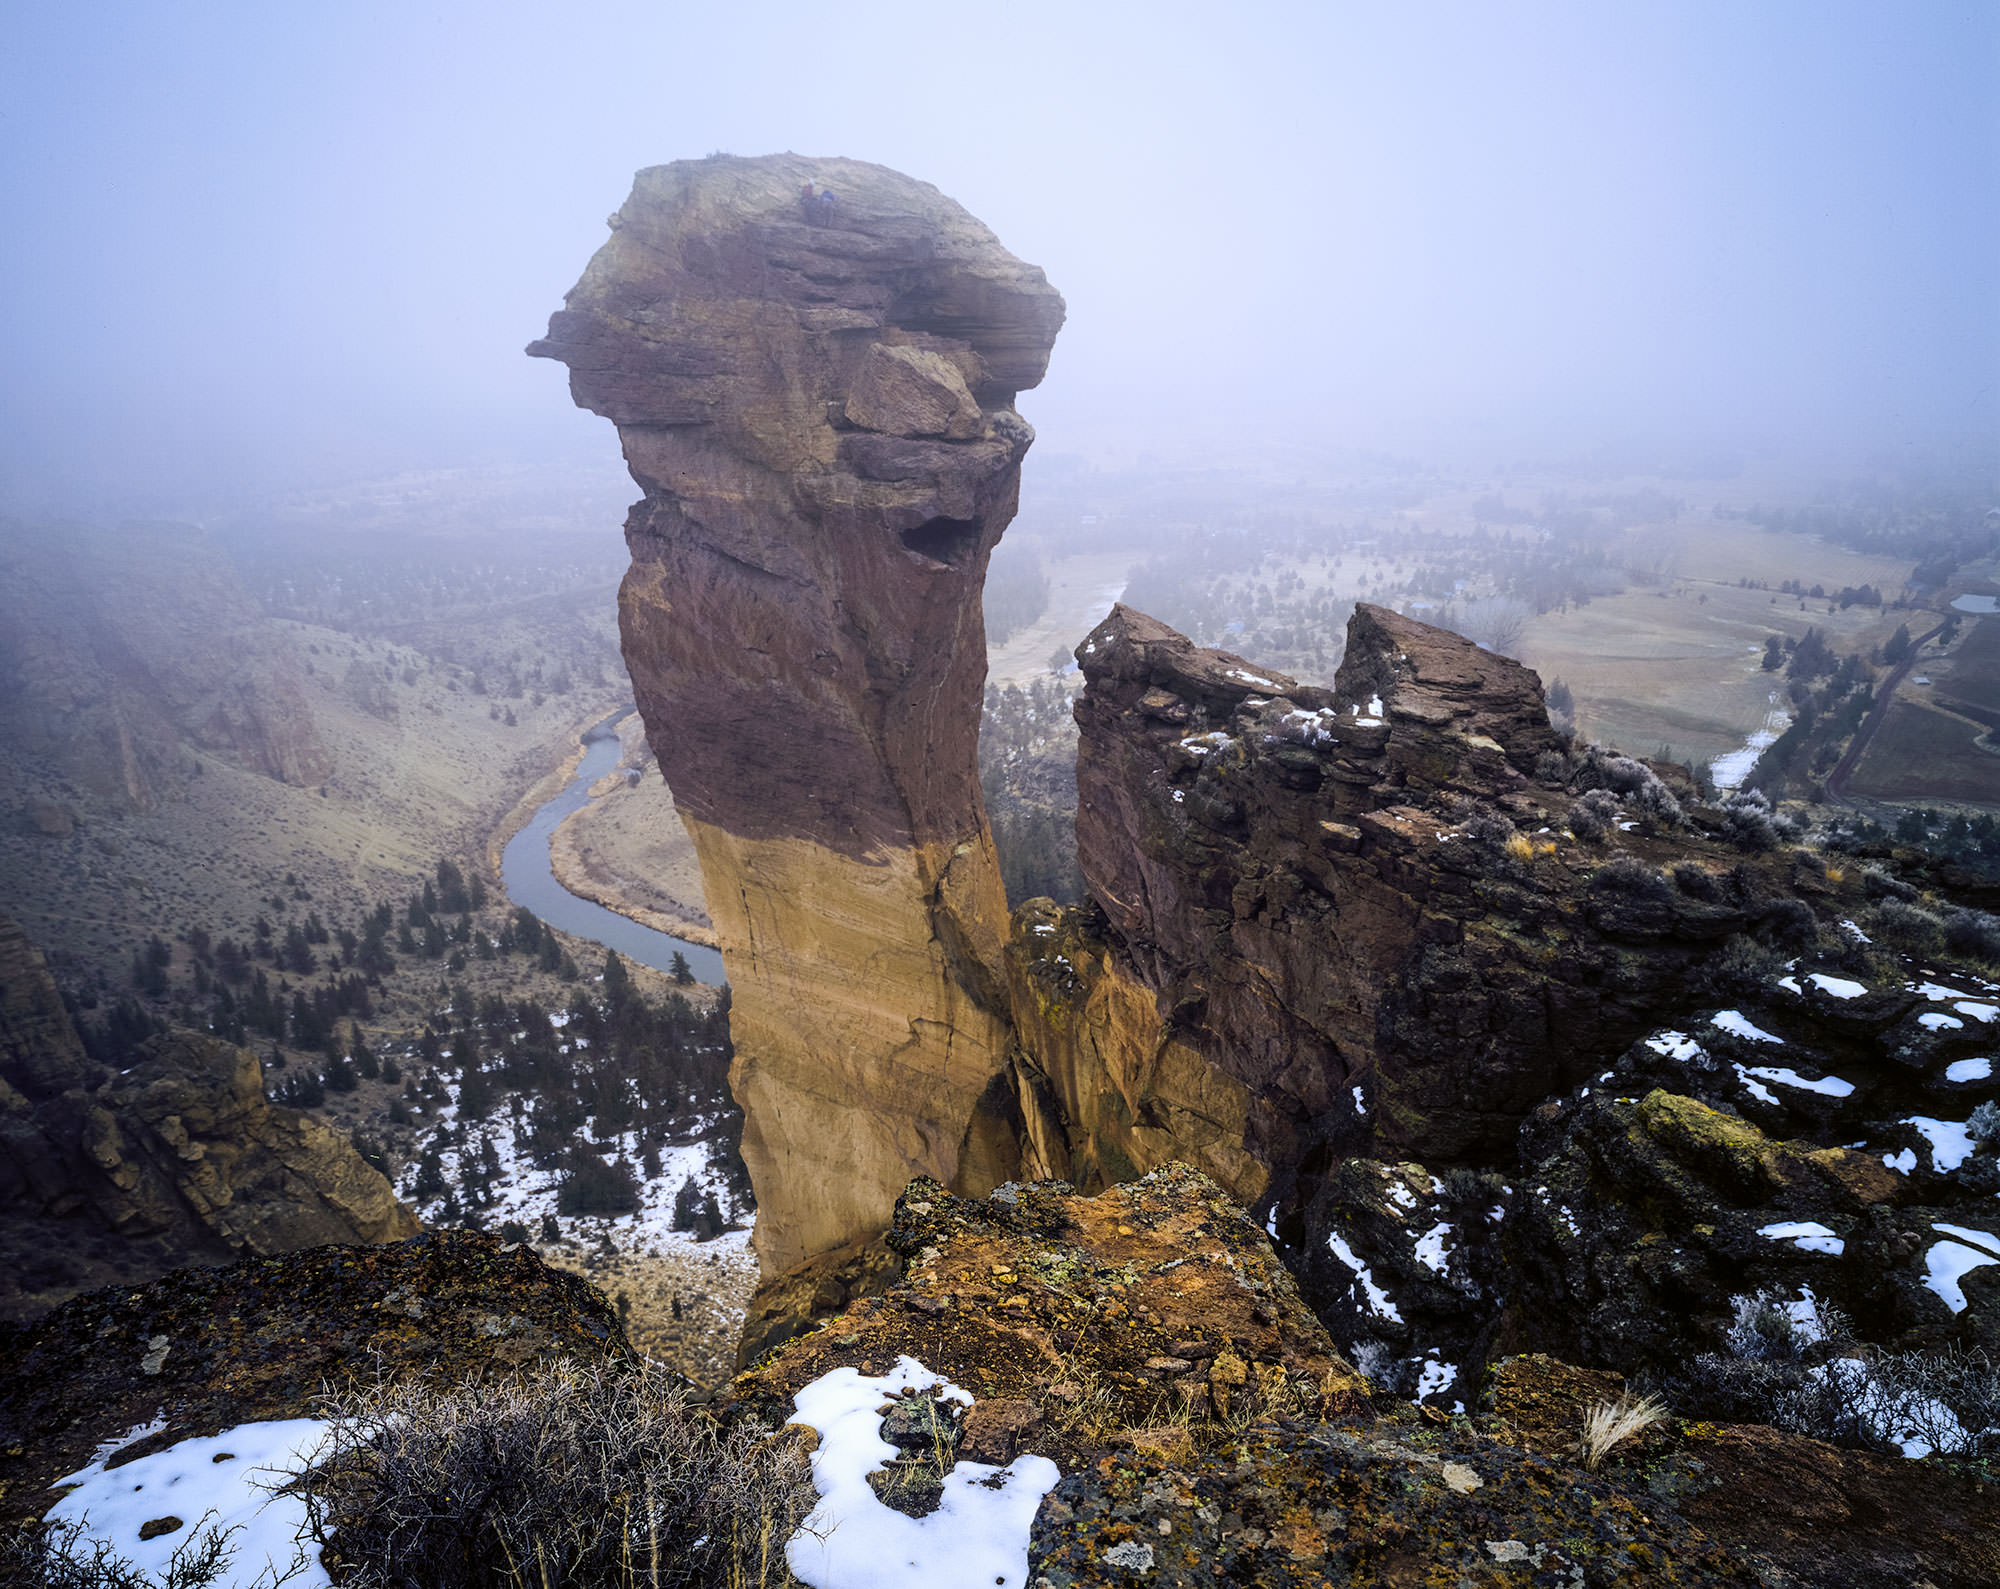 Granite monolith of Smith Rock.